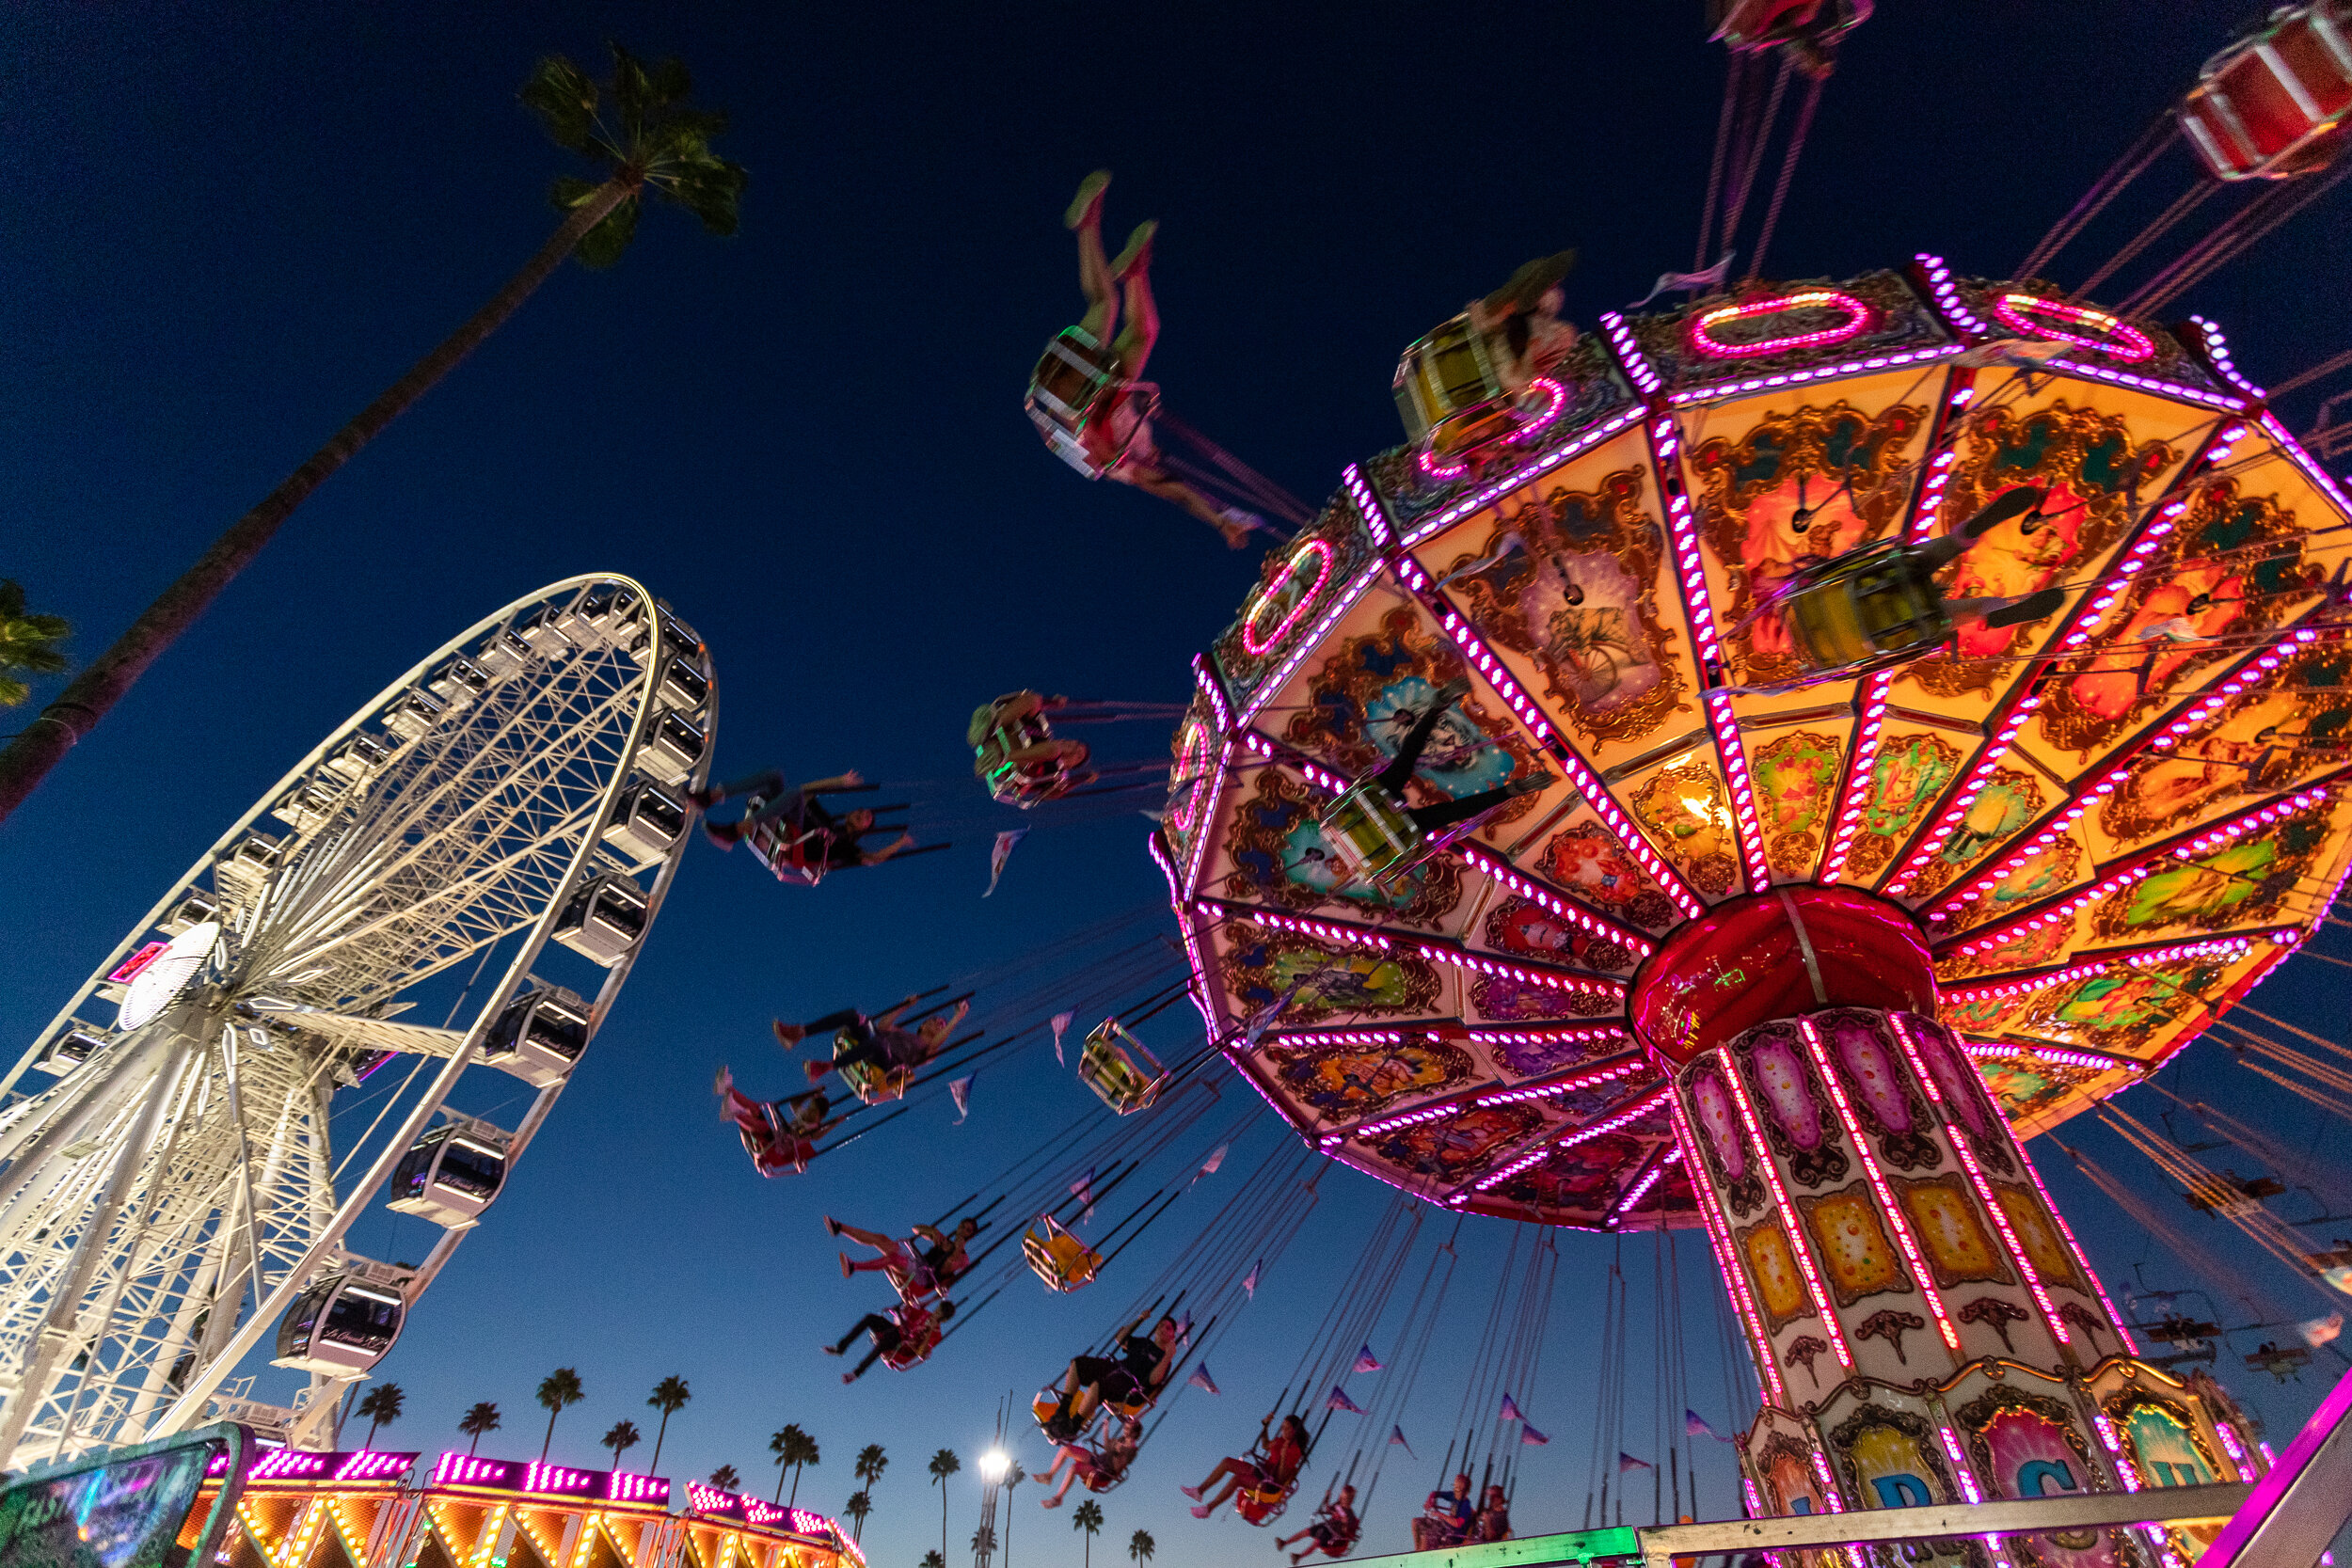 Nicholas Slobin/ Courier Fairgoers enjoy one of the many rides that the Los Angeles County Fair in Pomona, Calif. has to offer on Saturday, September 14, 2019.